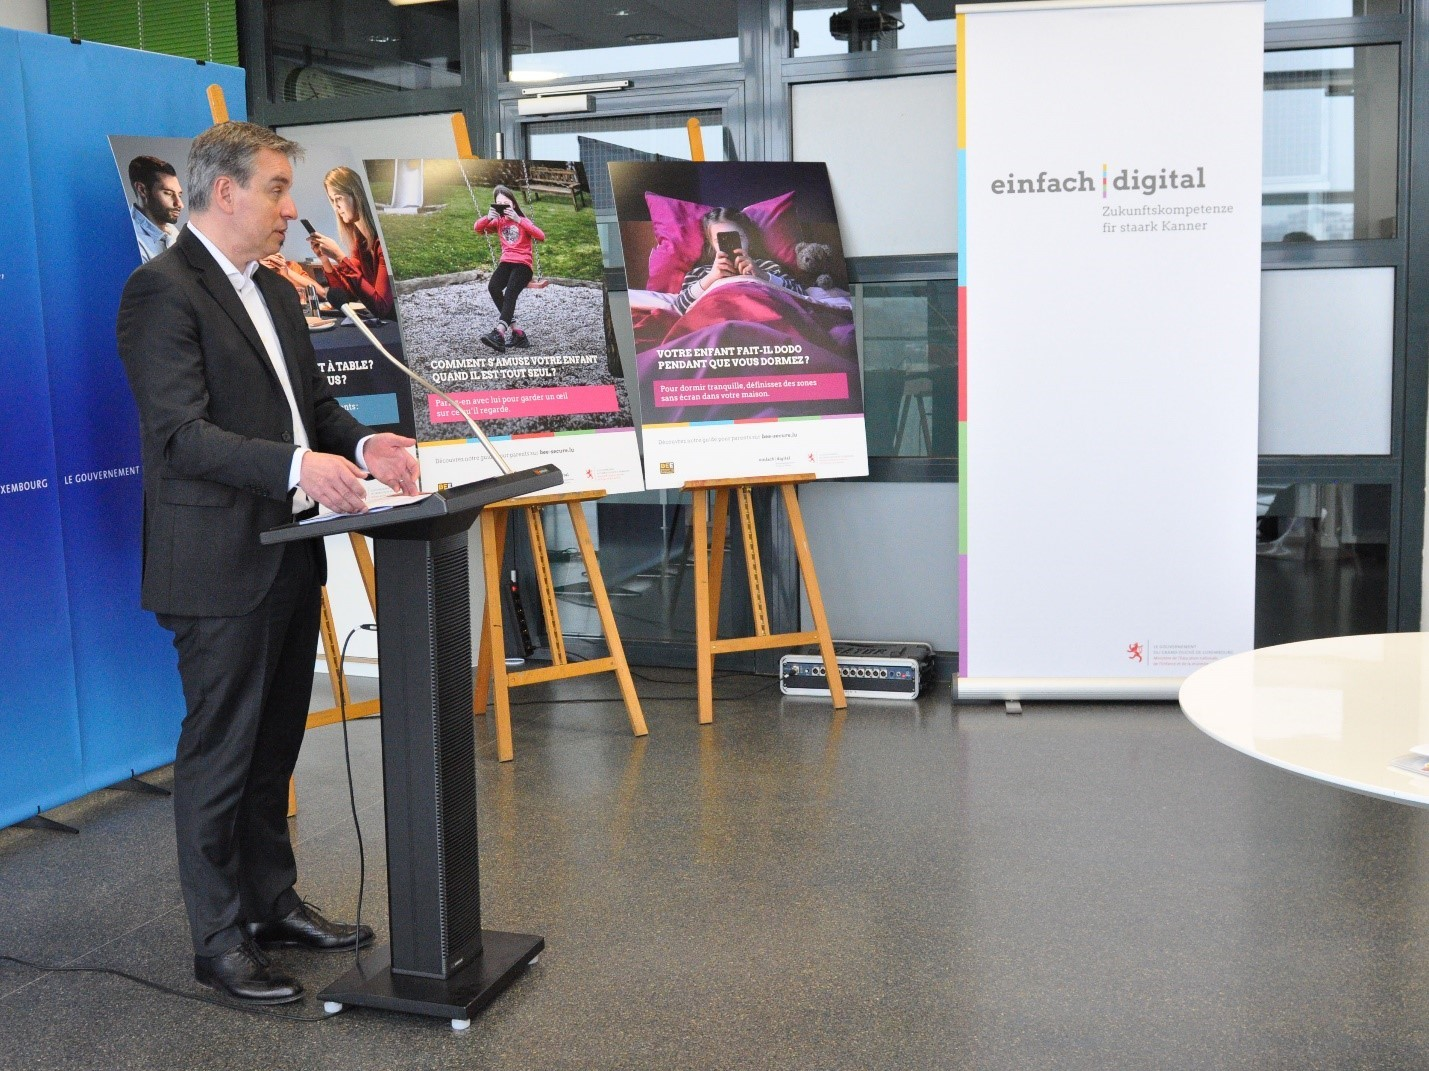 Picture of the einfach digital event in Luxembourg